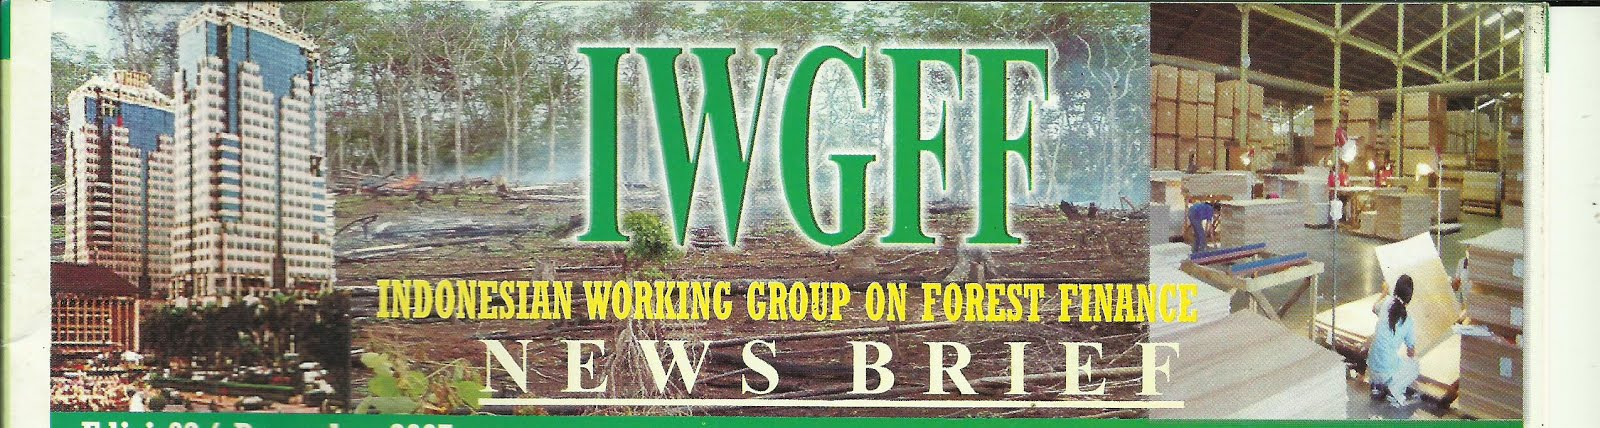 IWGFF Indonesian Working Group on Forest Finance